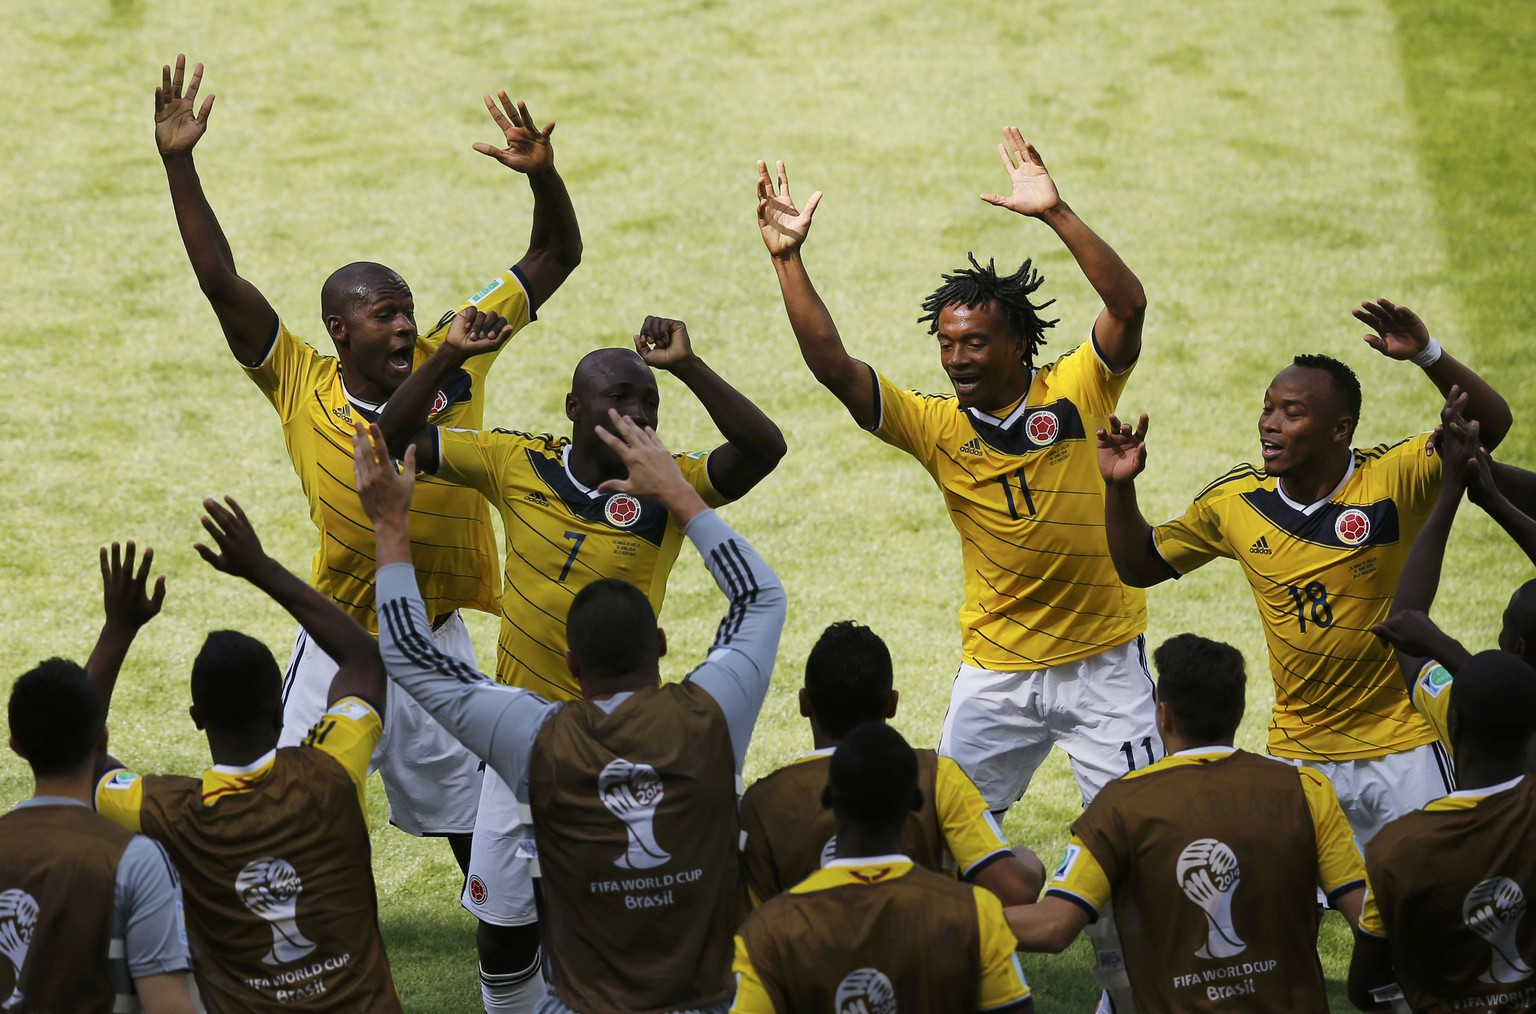 Colombia's Pablo Armero (7) celebrates with teammates after scoring a goal during their 2014 World Cup Group C soccer match against Greece at the Mineirao stadium in Belo Horizonte June 14, 2014.    REUTERS/Leonhard Foeger (BRAZIL  - Tags: SOCCER SPORT WORLD CUP)